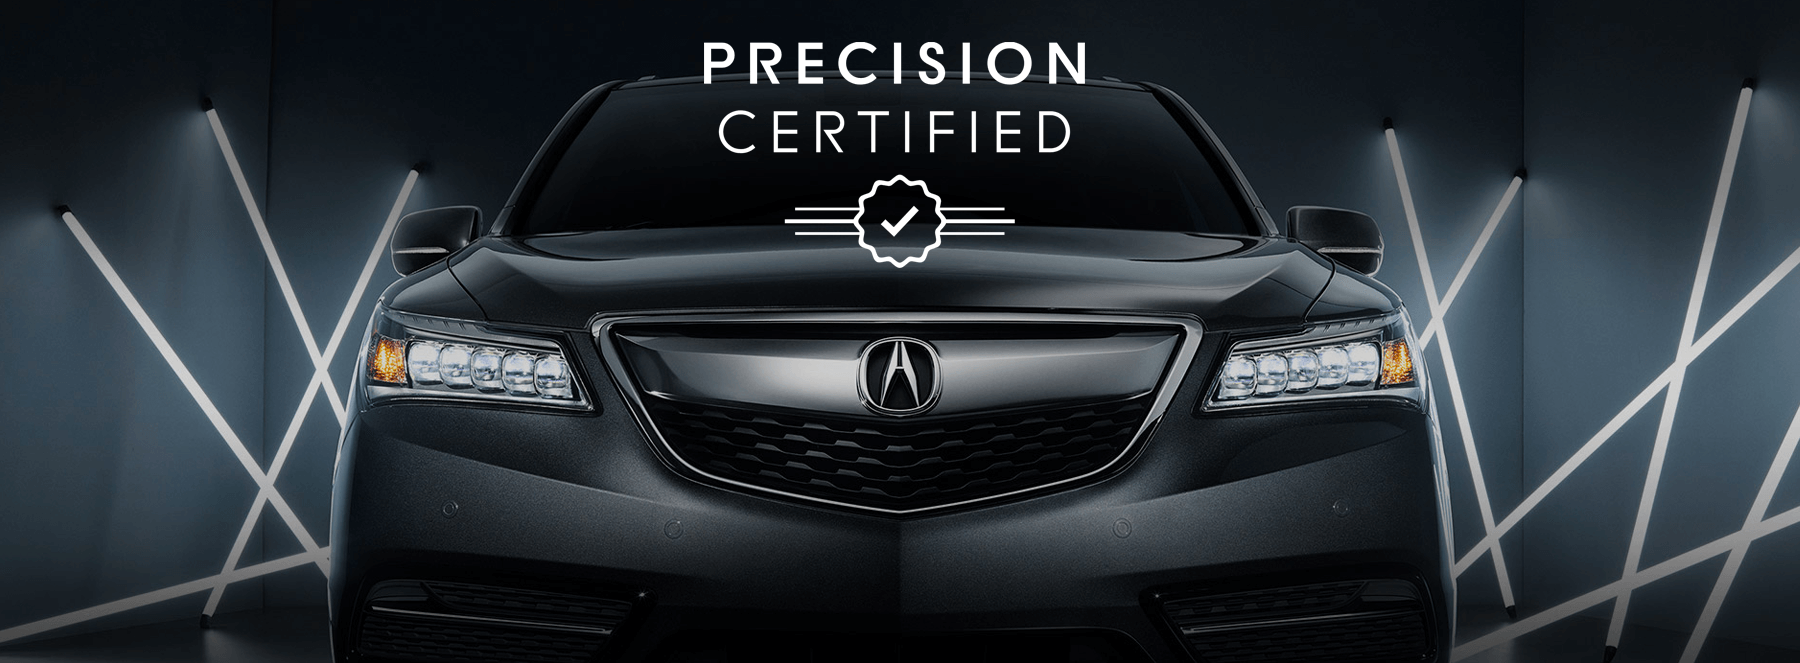 Acura Precision Certified Slider